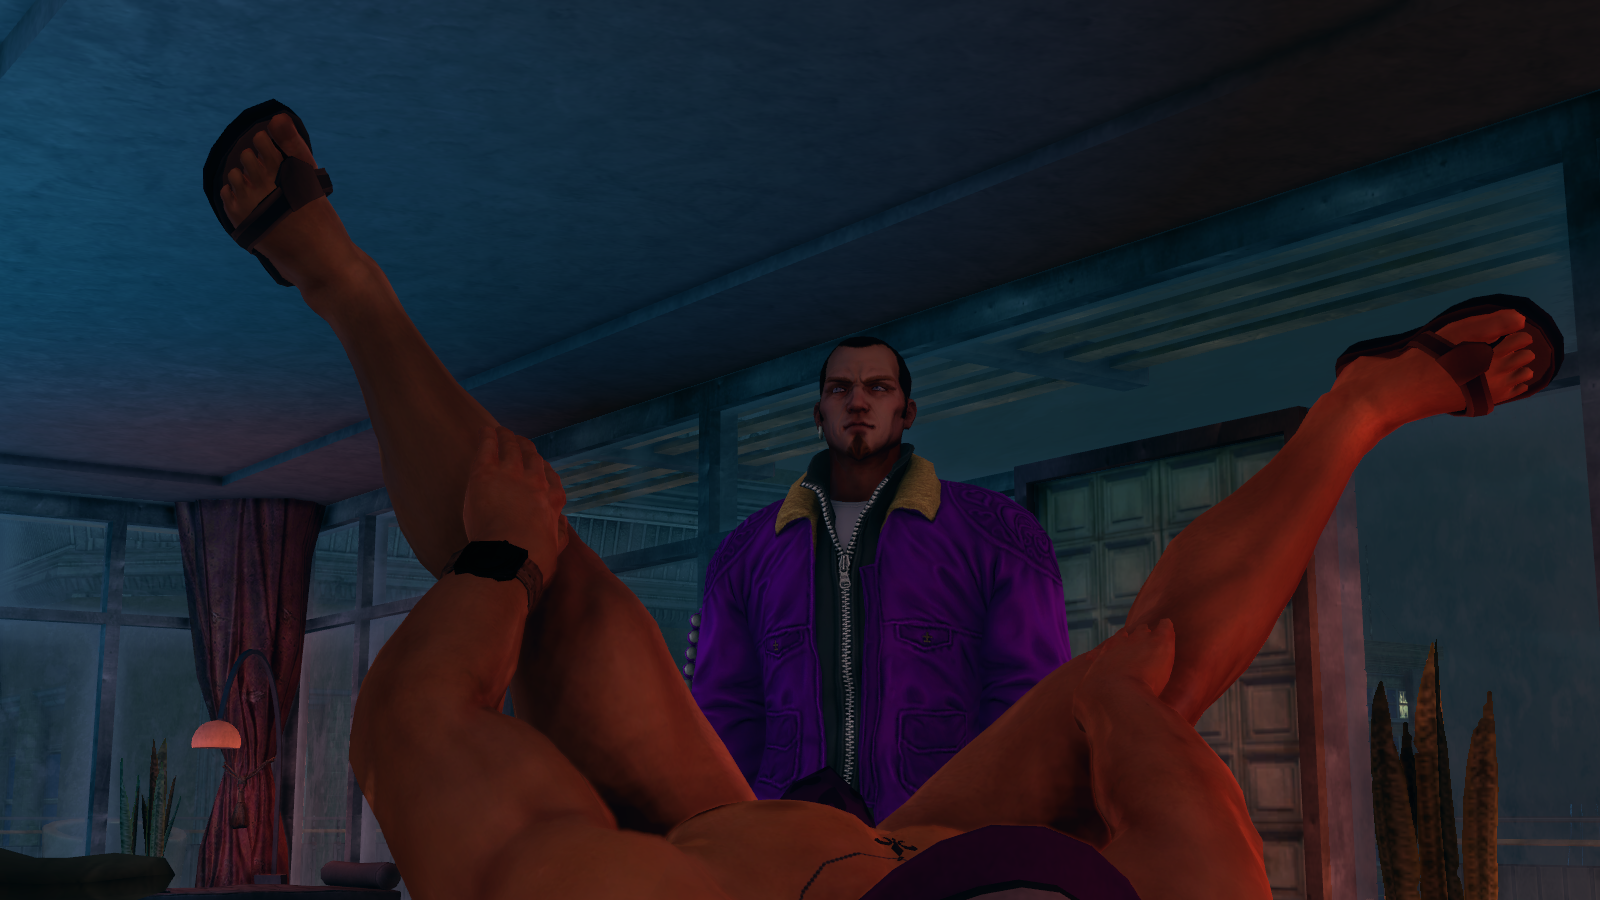 Saints row 2 nude unblurred glitch erotic scenes